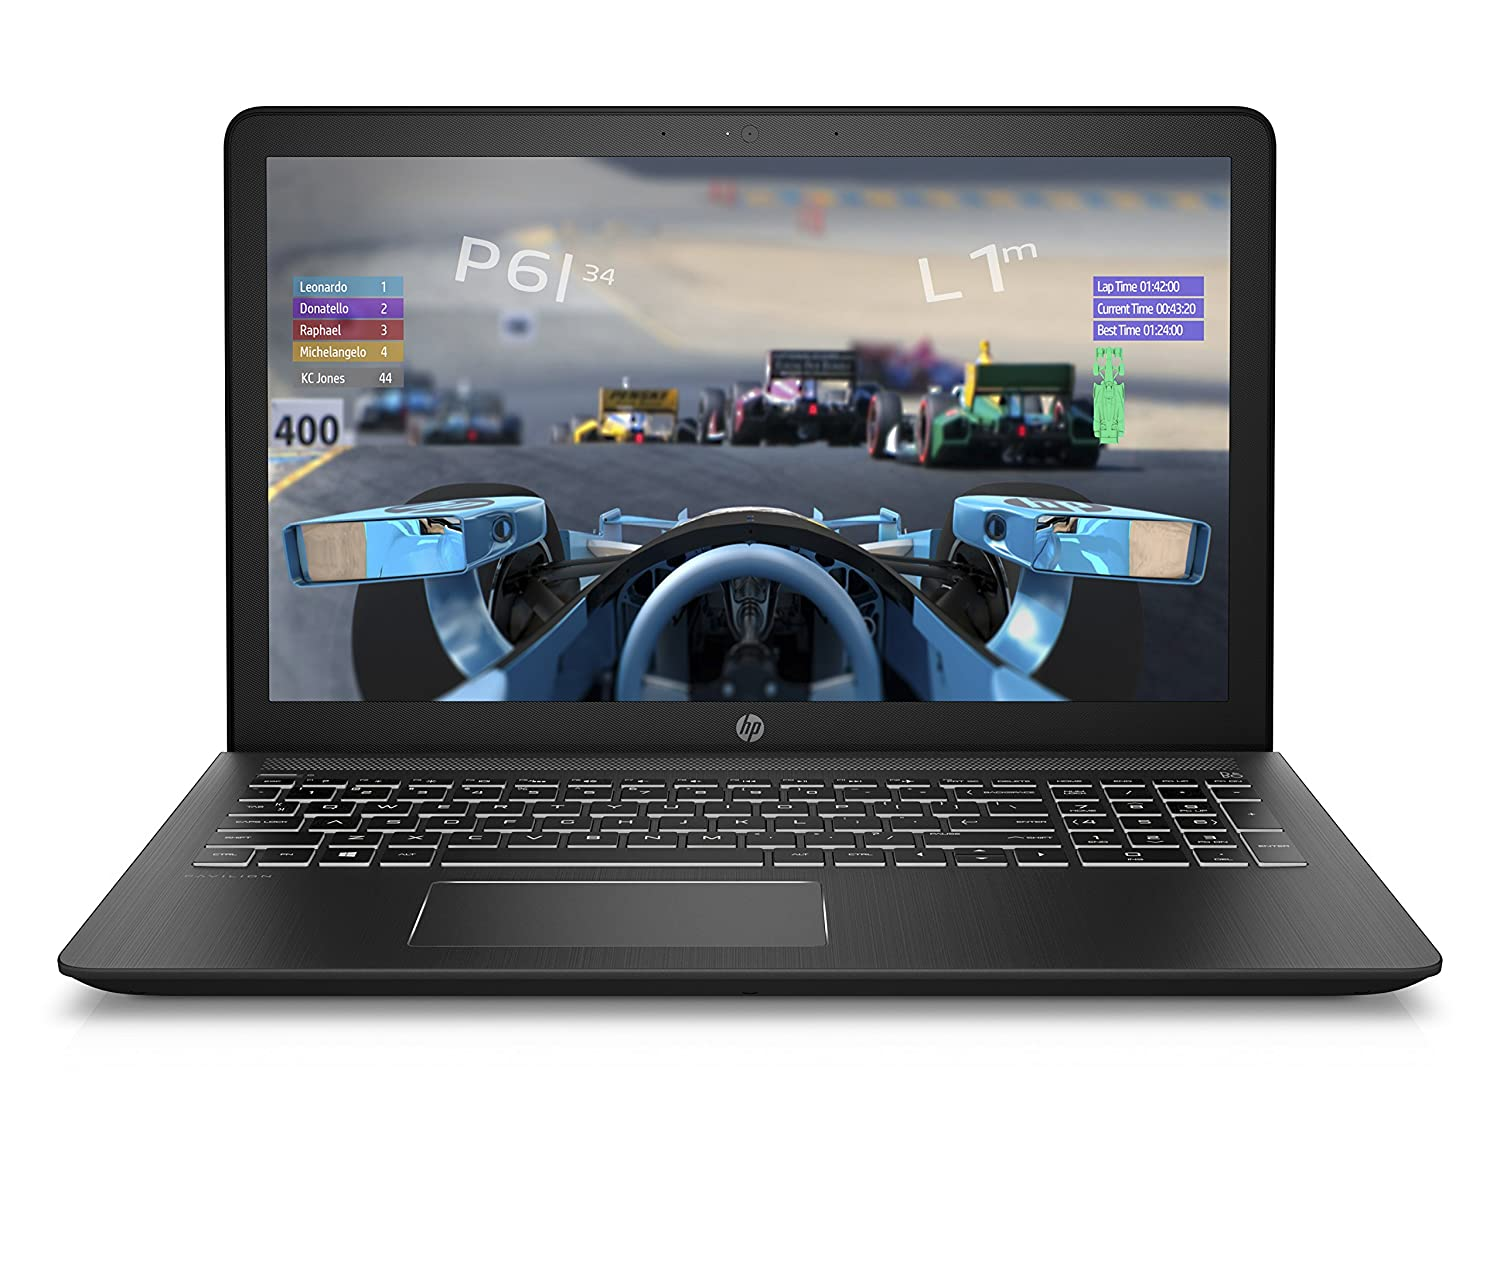 "HP Pavilion Power 15"" IPSGeForce GTX 1050 Ti Gaming Laptop, Intel Quad Core i7-7700HQ Processor, 16GB RAM, 1TB hard drive, 128GB solid-state drive, Windows 10 64 bit home (15-cb079nr, Black"